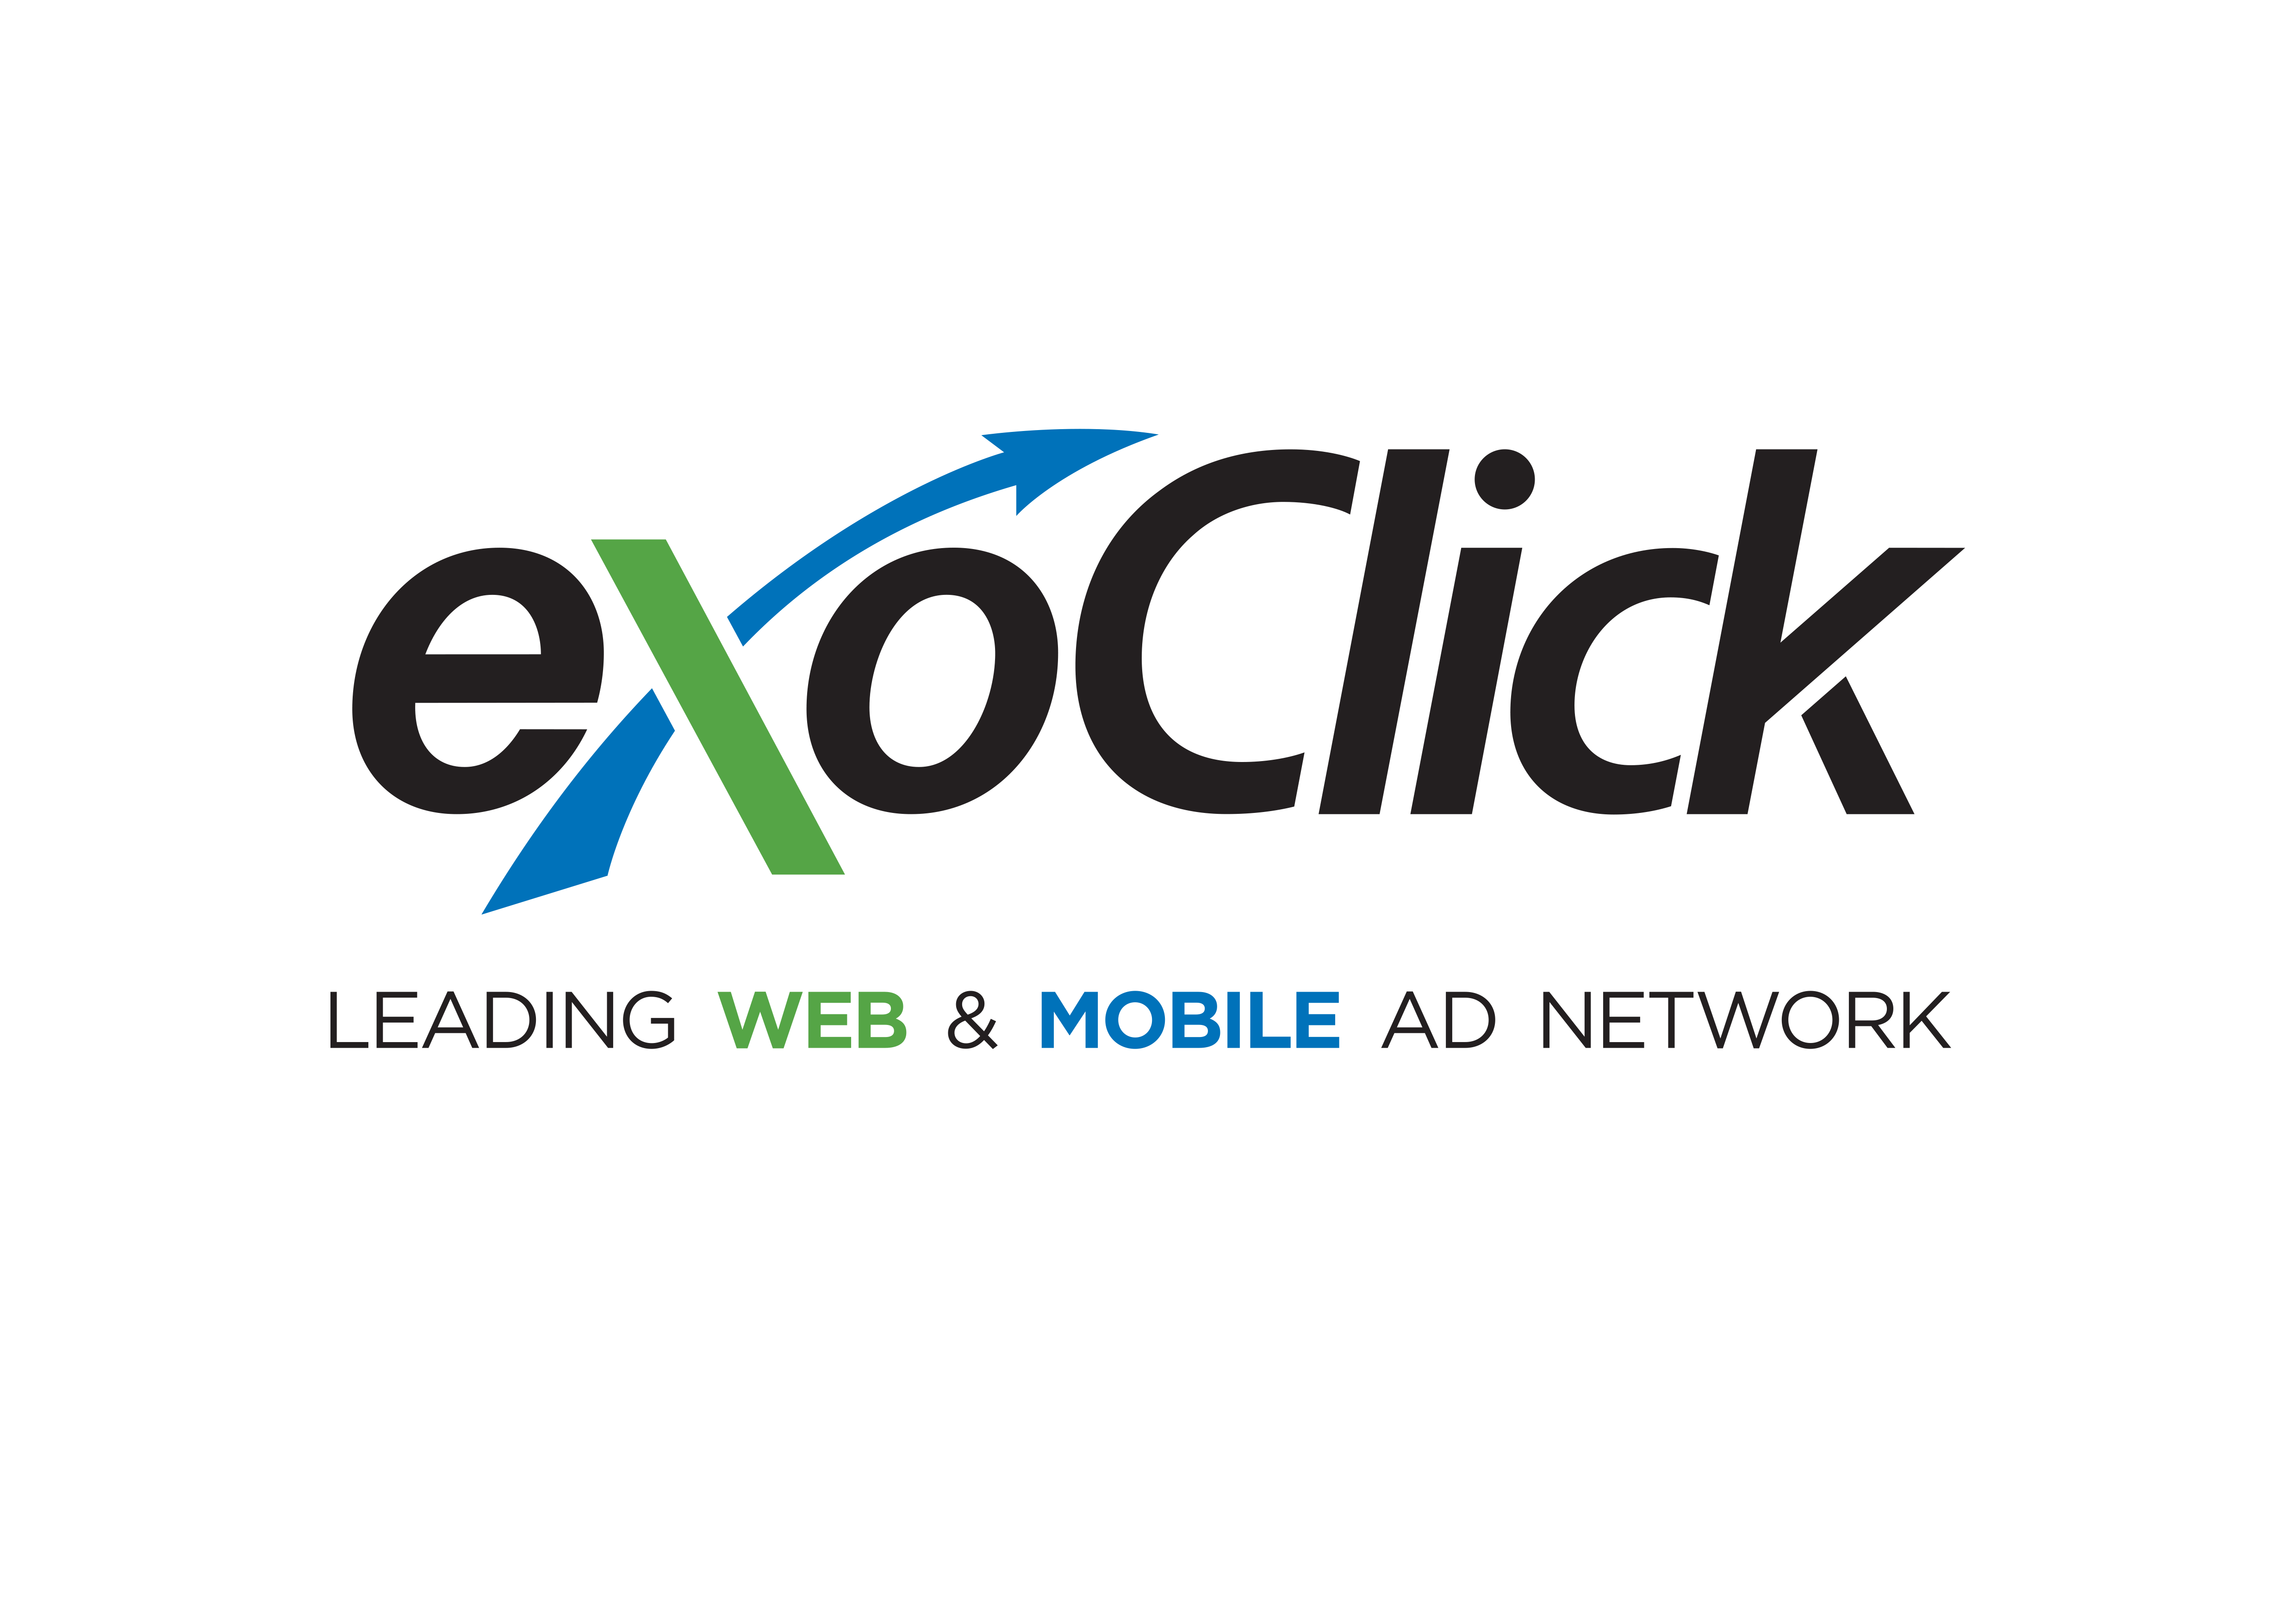 Exoclick Review and CPM Rates 2016